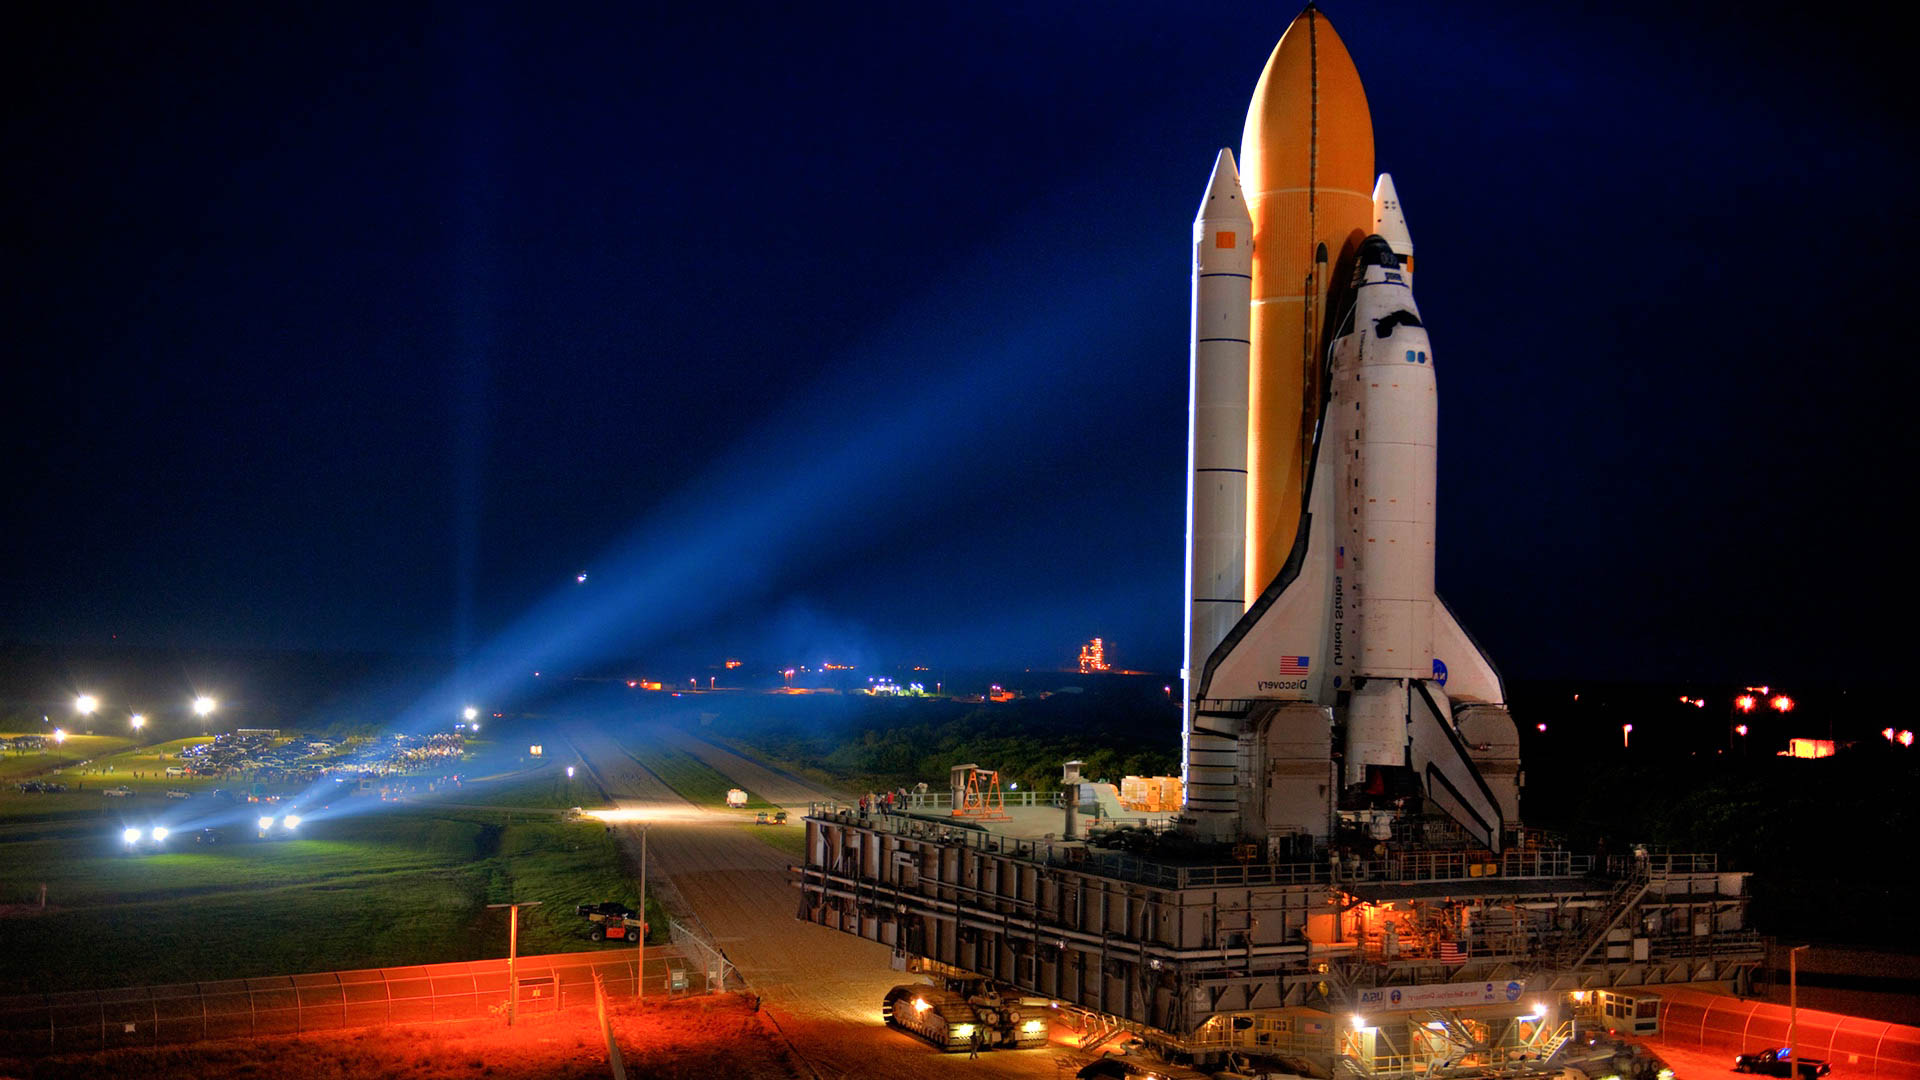 space shuttle discovery wallpaper - photo #19